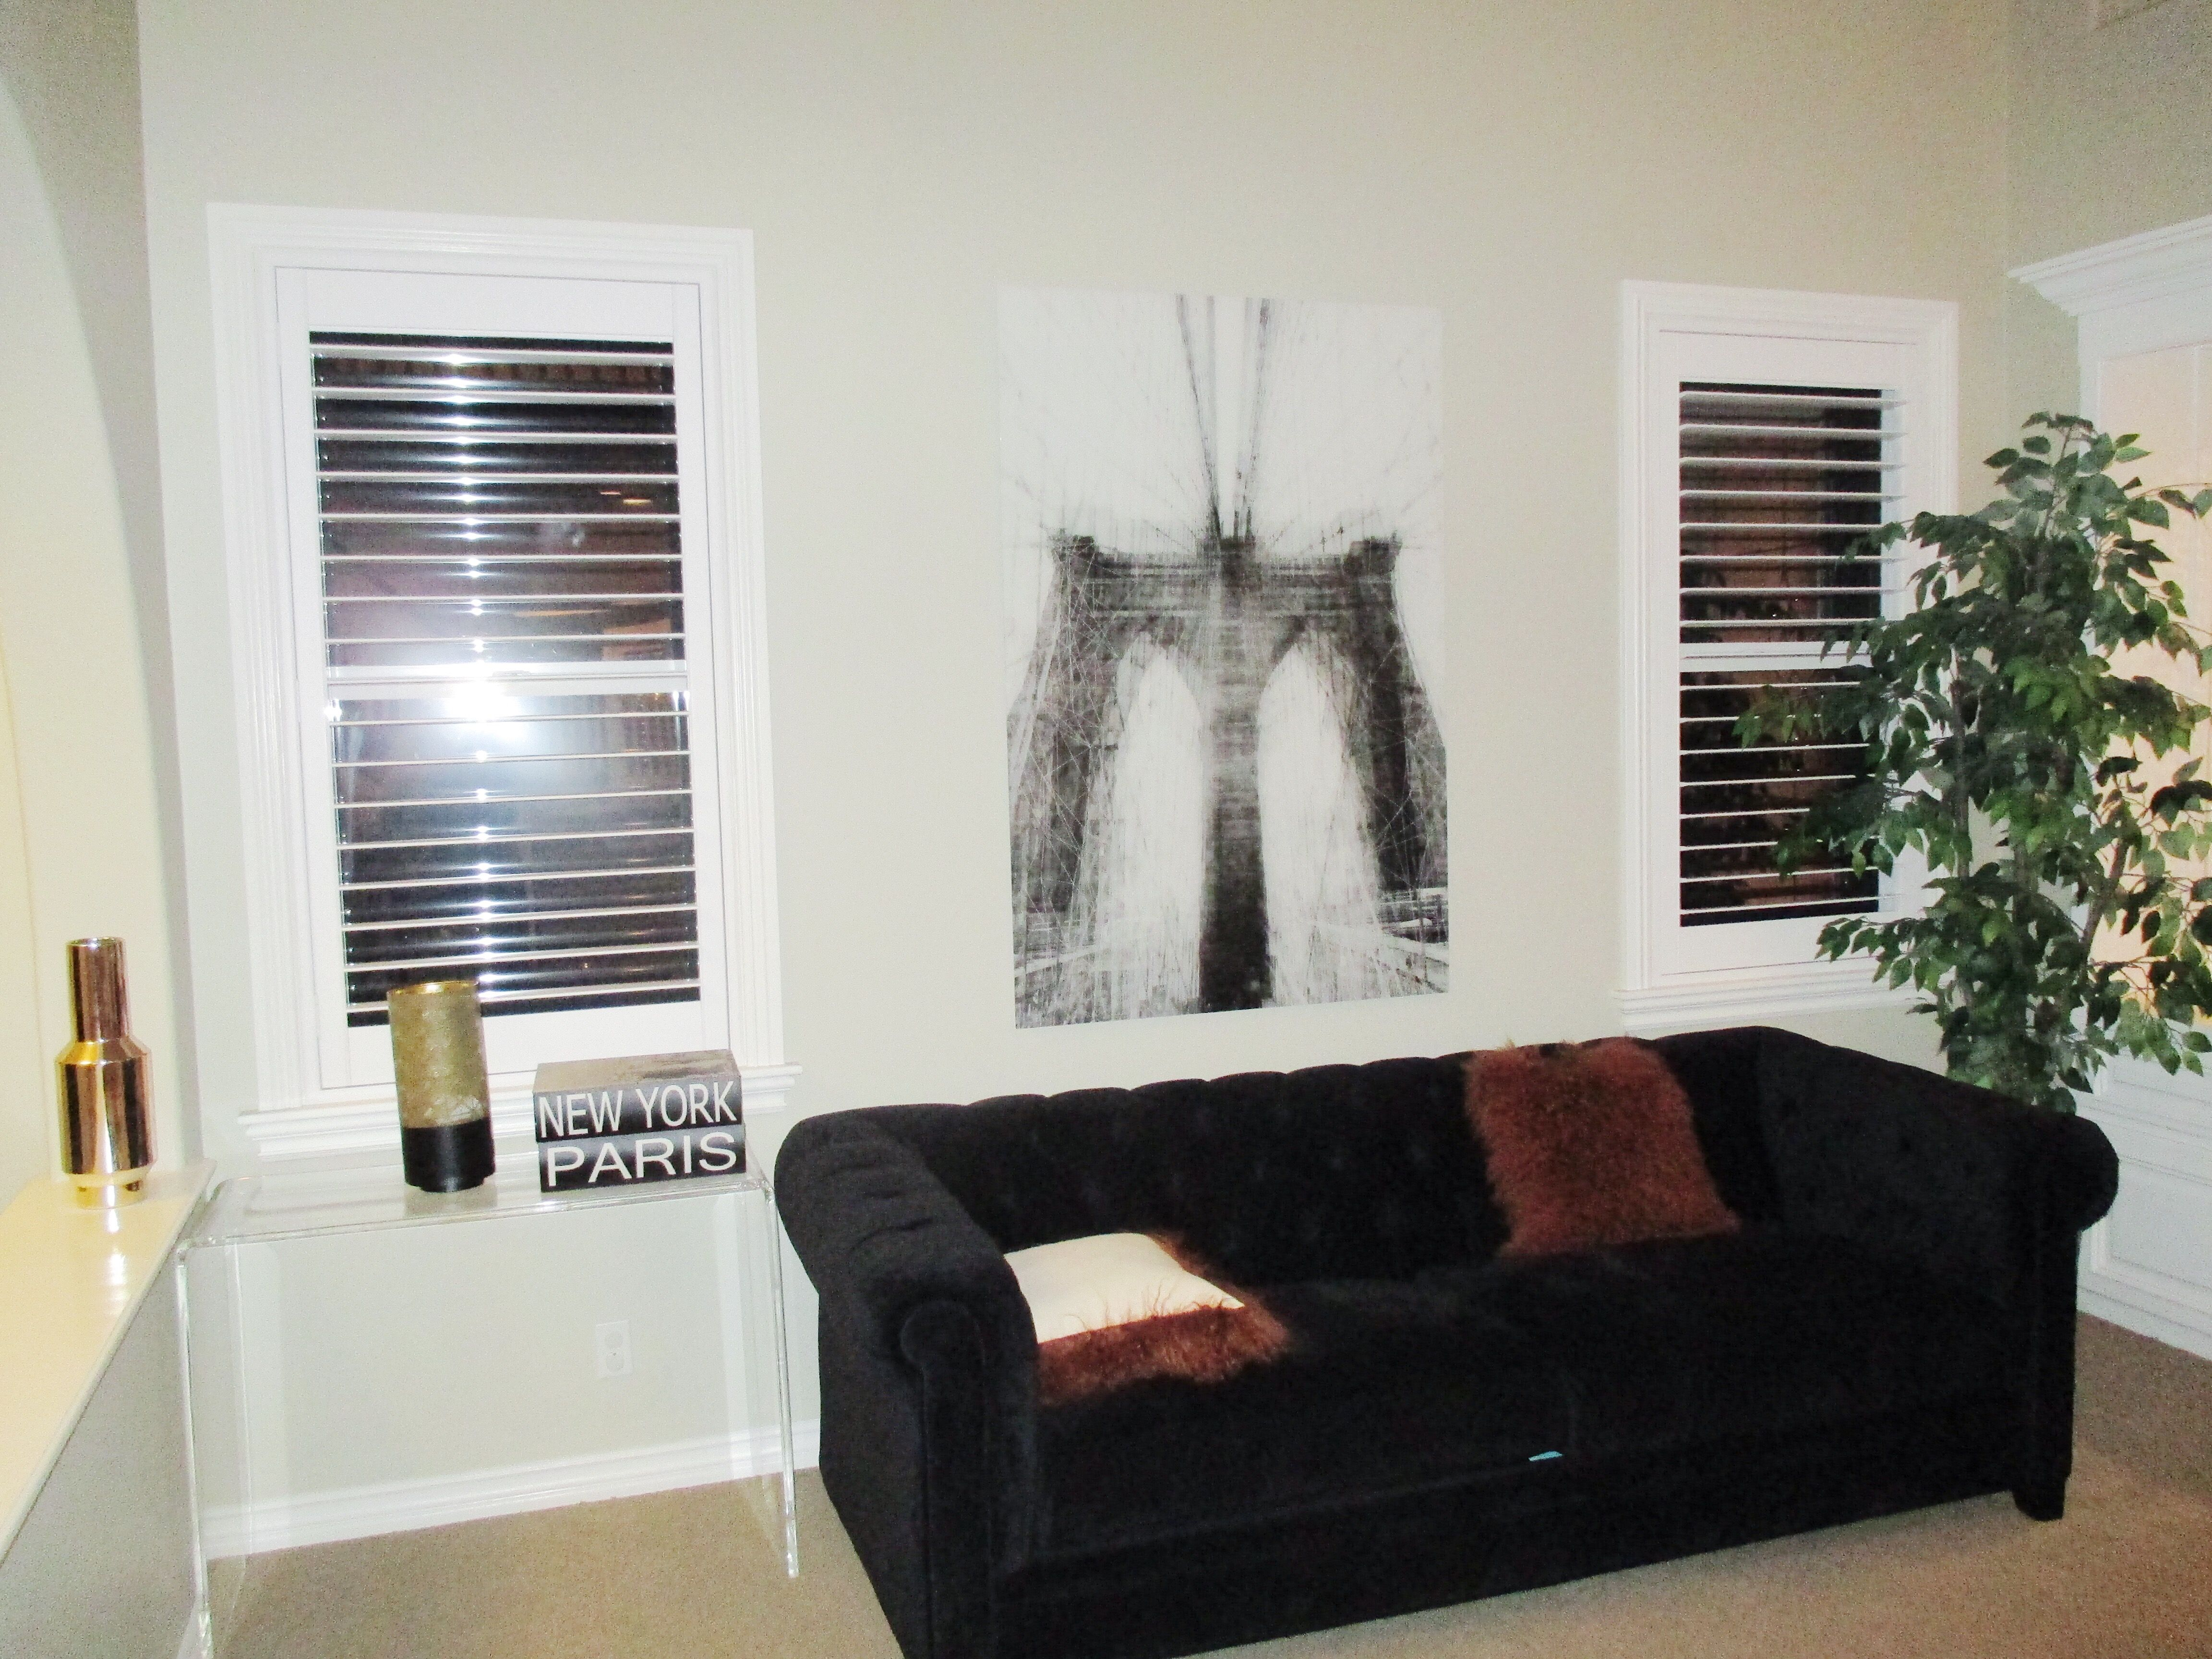 Get your living room up to date with some modern Interior Shutters ...